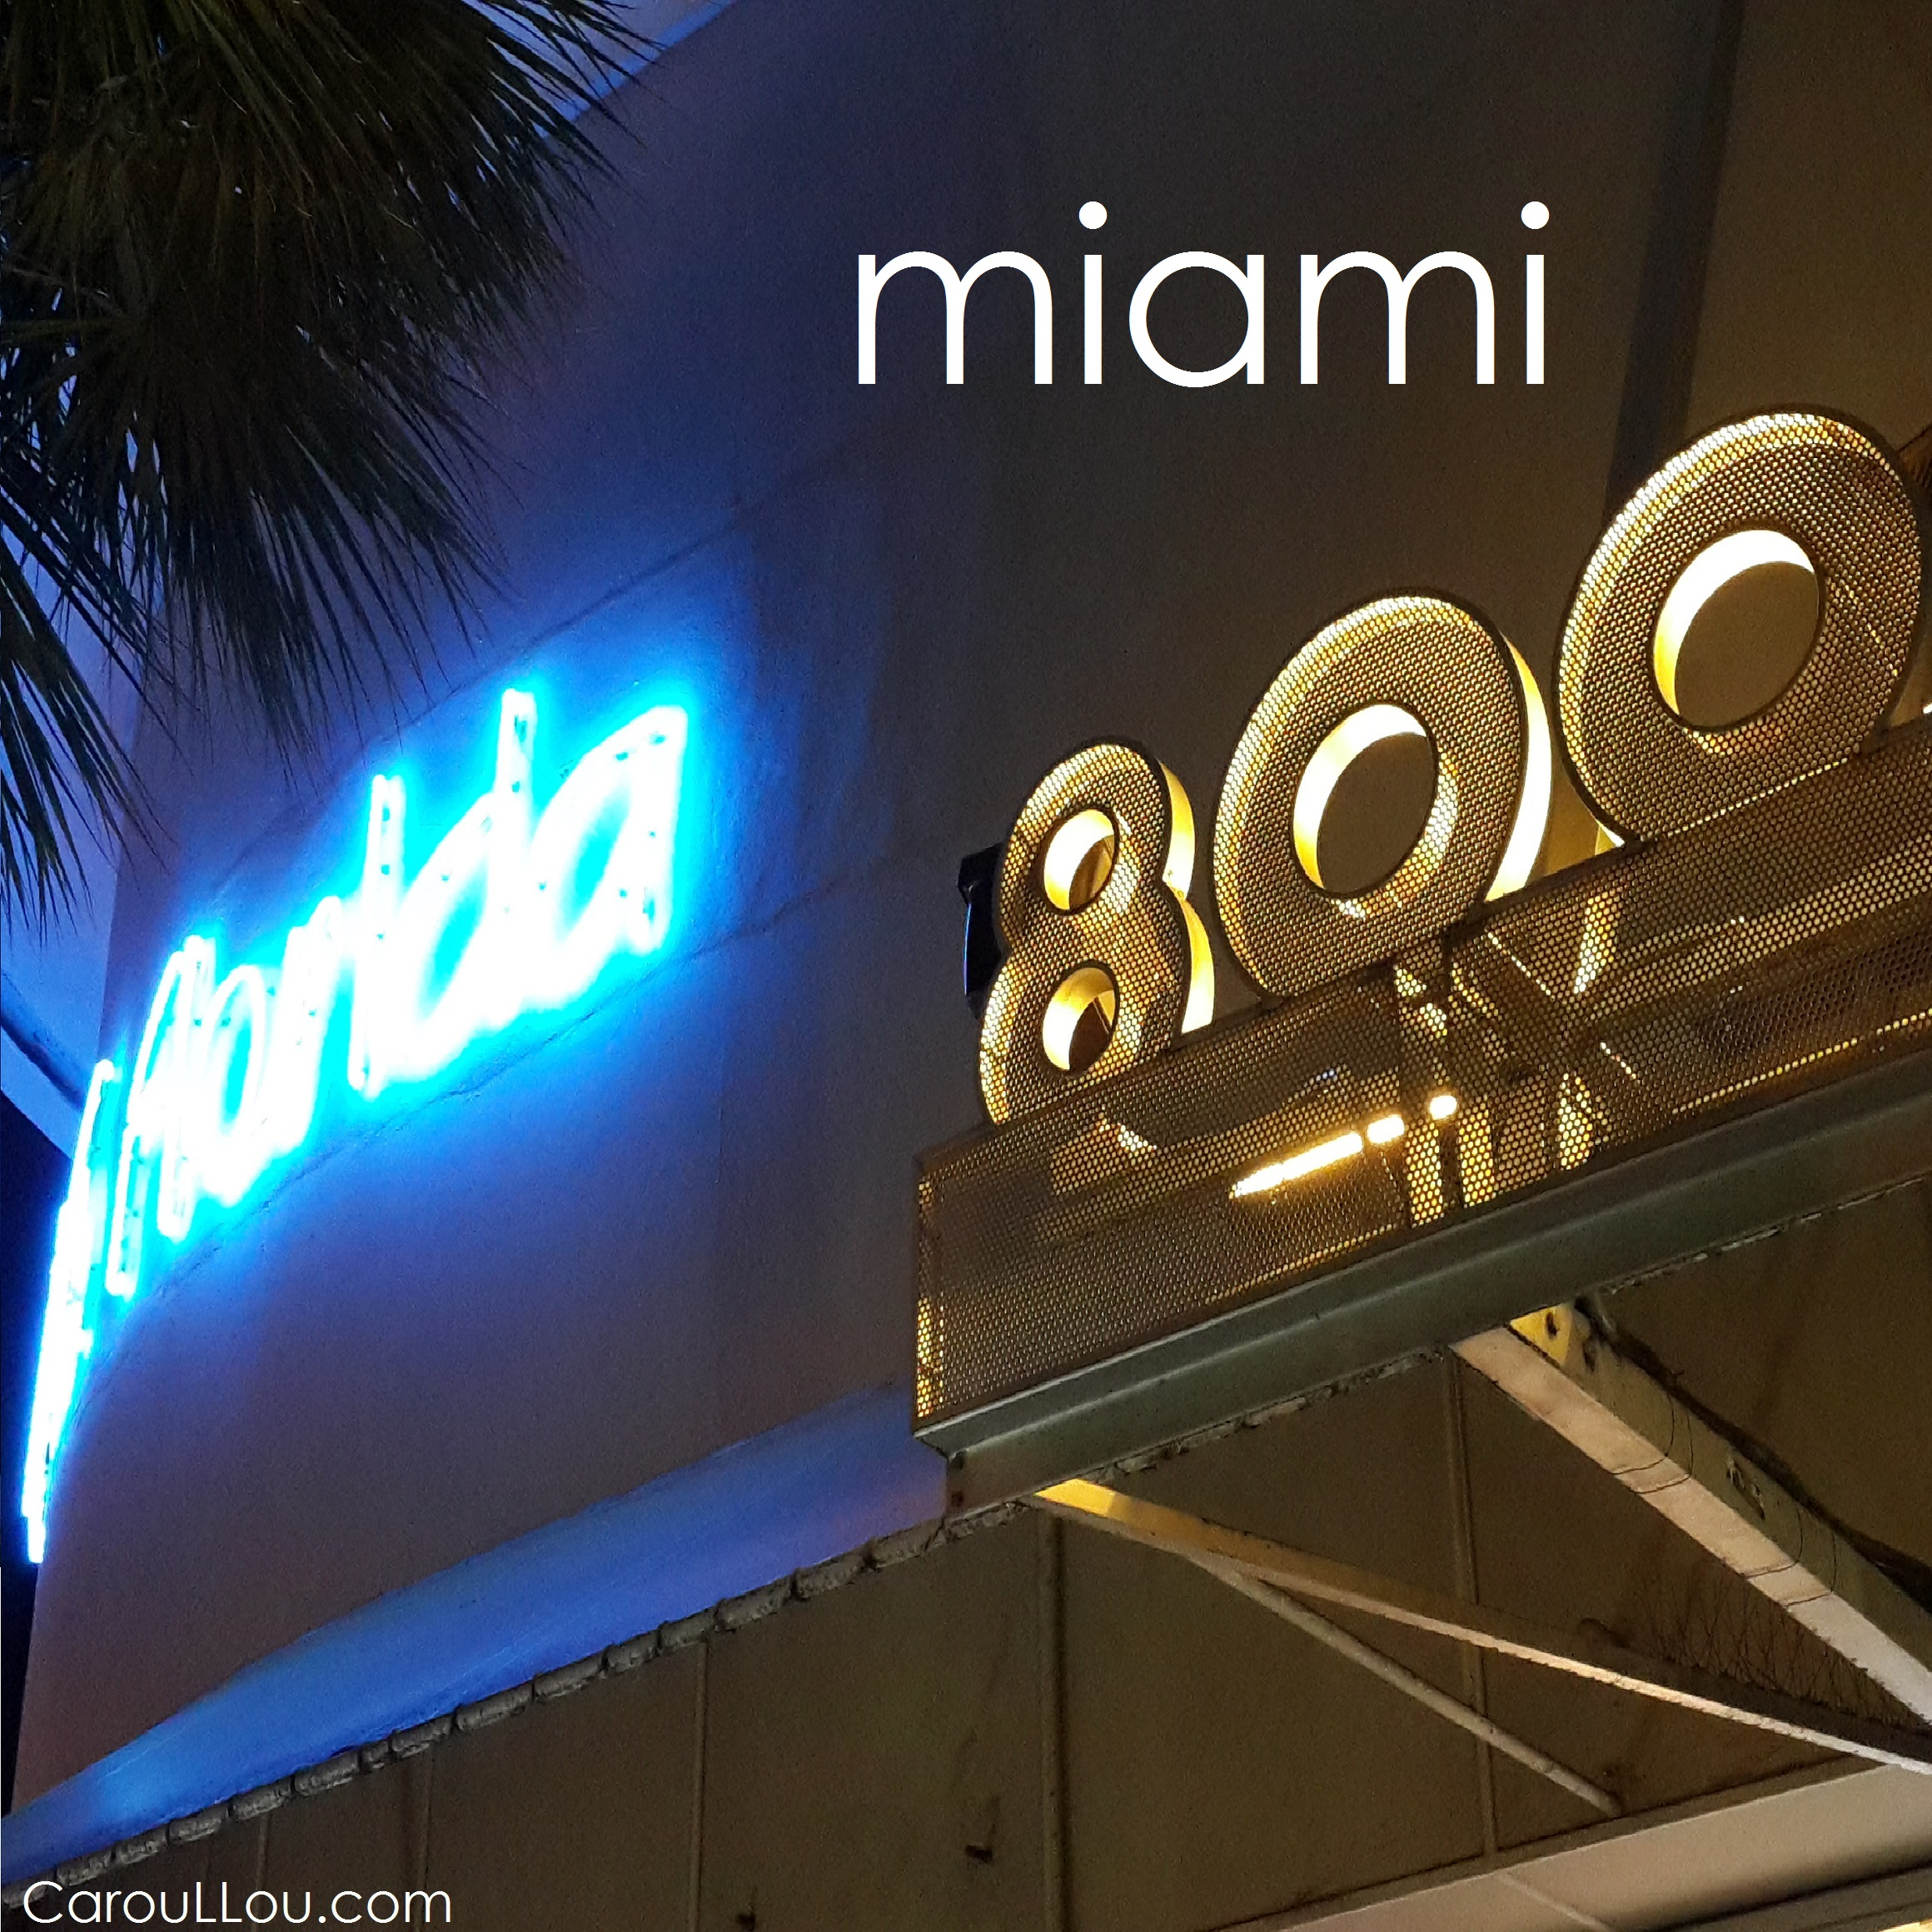 CarouLLou.com Carou LLou in South Beach Miami Florida Lincoln road +-